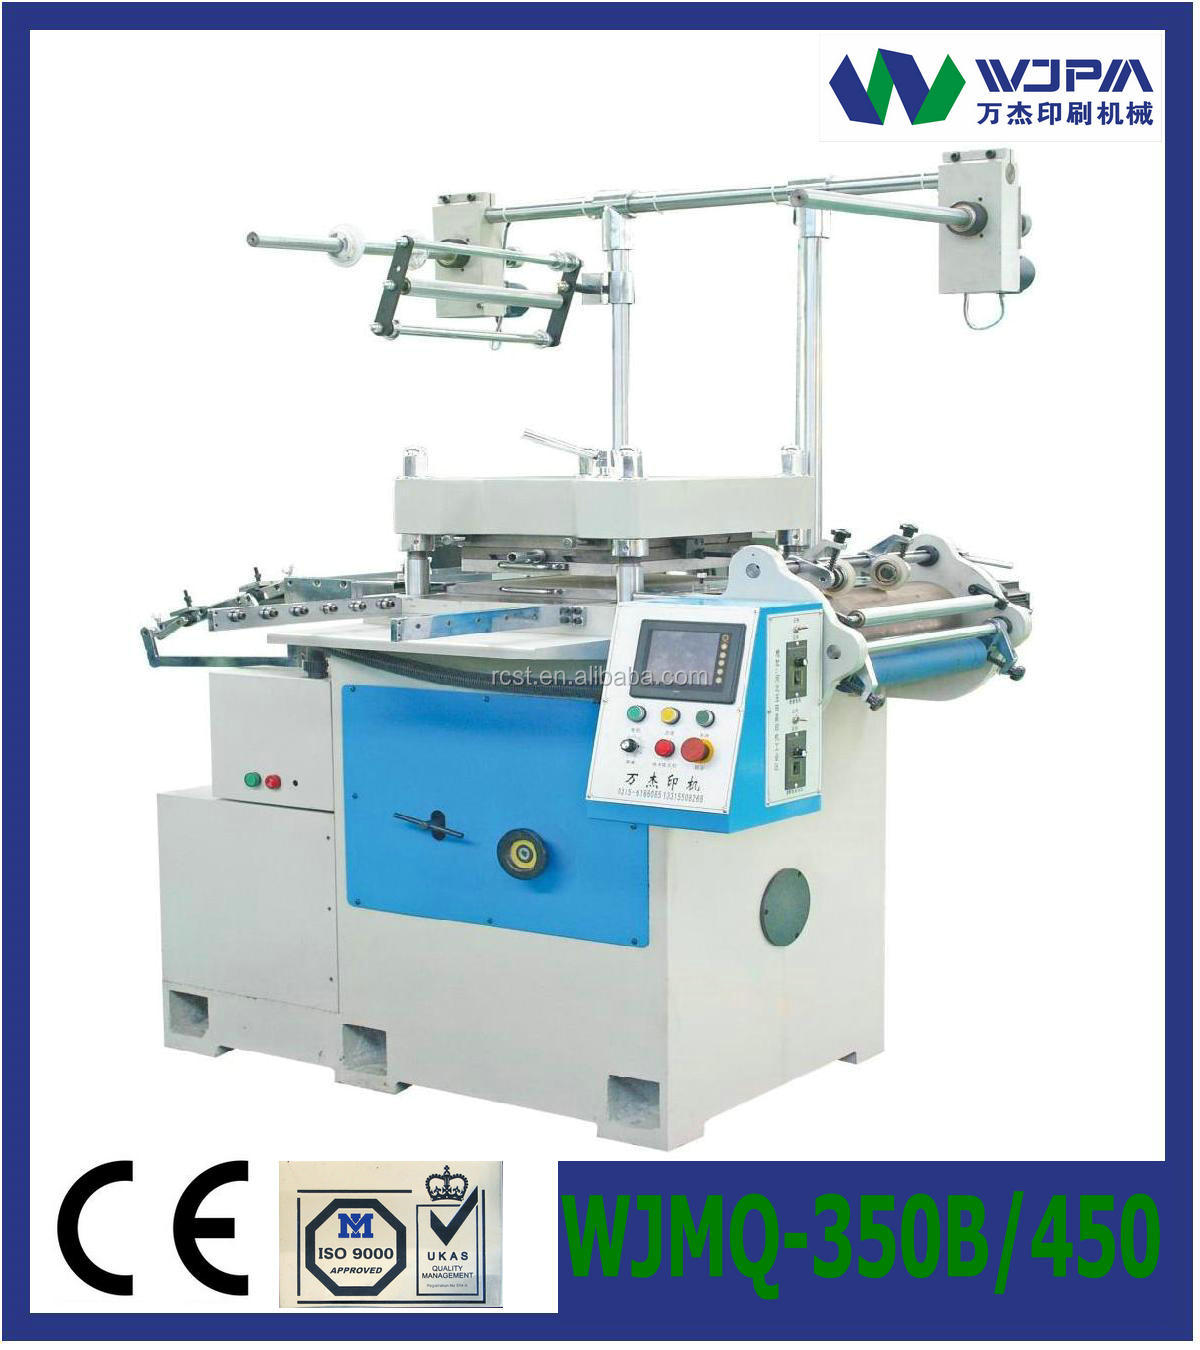 economical and practical roll material slitter rewinder automatic slitting machine